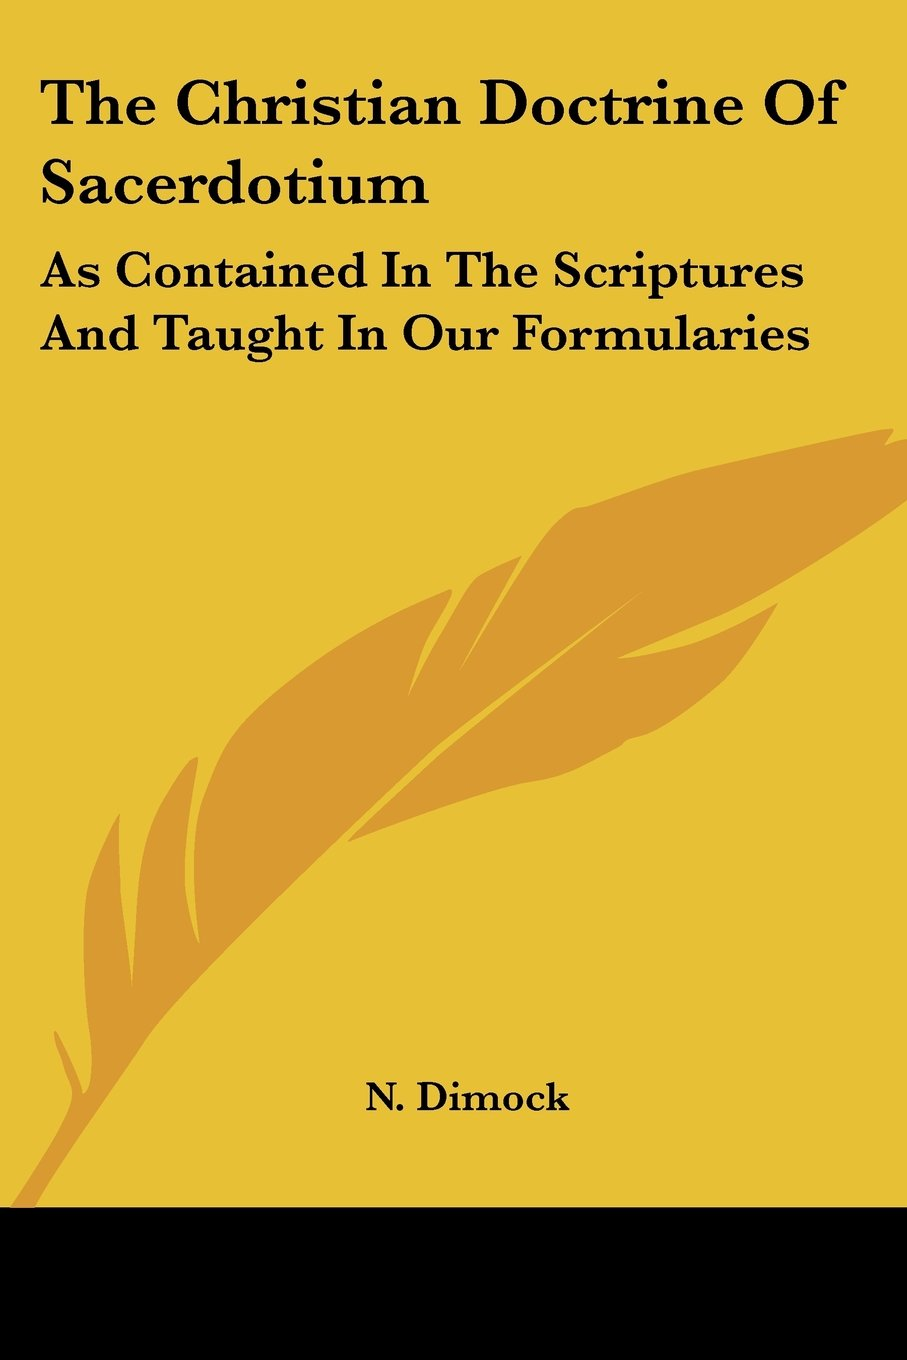 Read Online The Christian Doctrine Of Sacerdotium: As Contained In The Scriptures And Taught In Our Formularies ebook